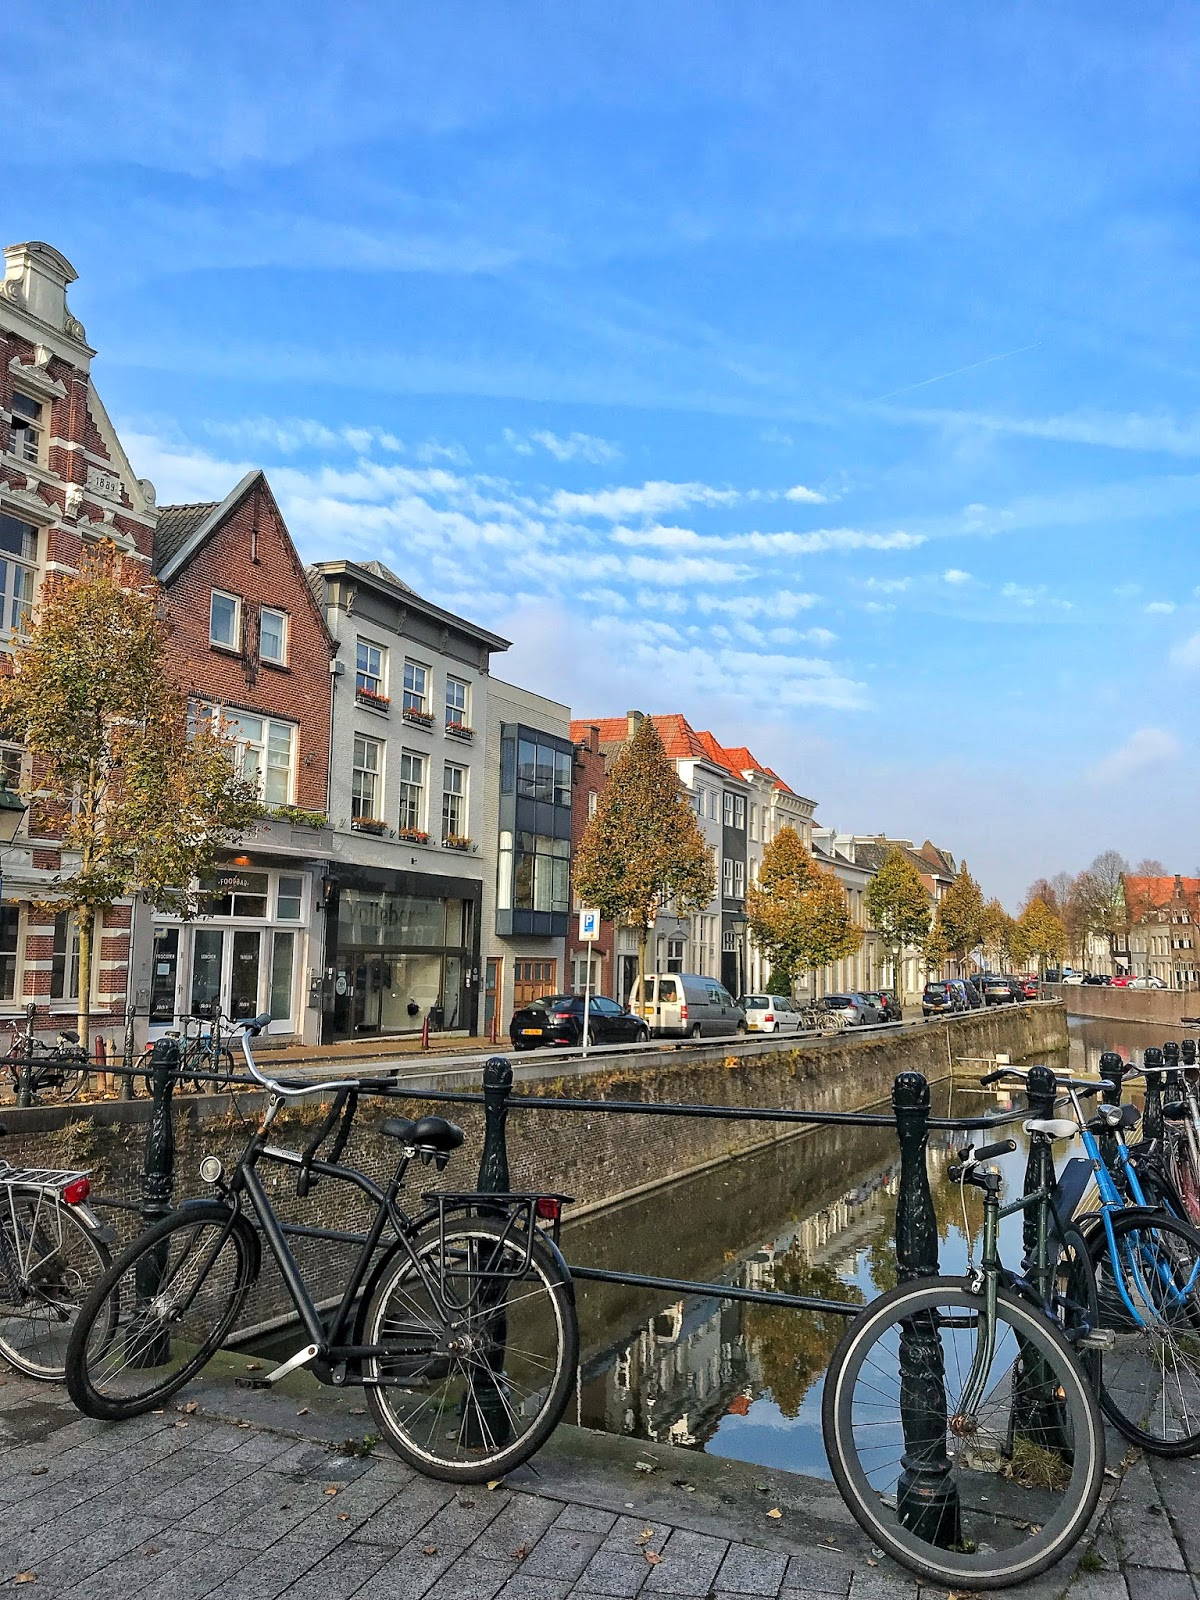 Travel: Festive Shopping in Den Bosch